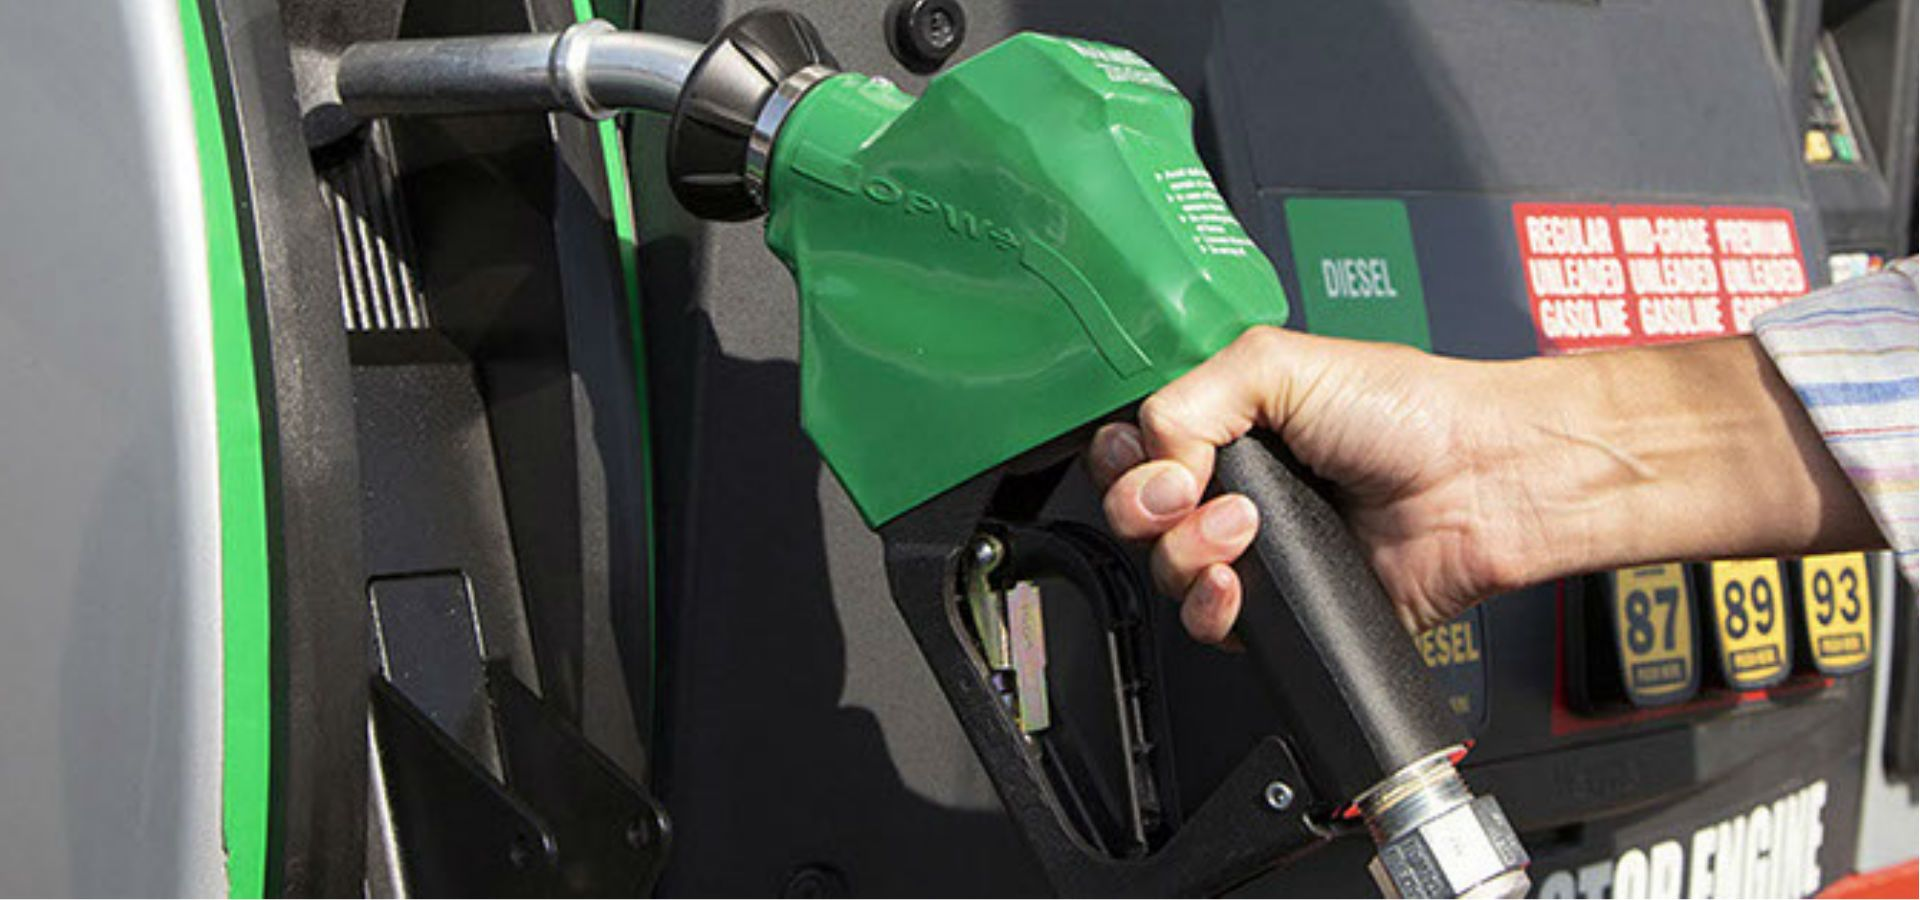 Dealing with Fugitive Fuel Drops: Drain Them, Don't Retain Them